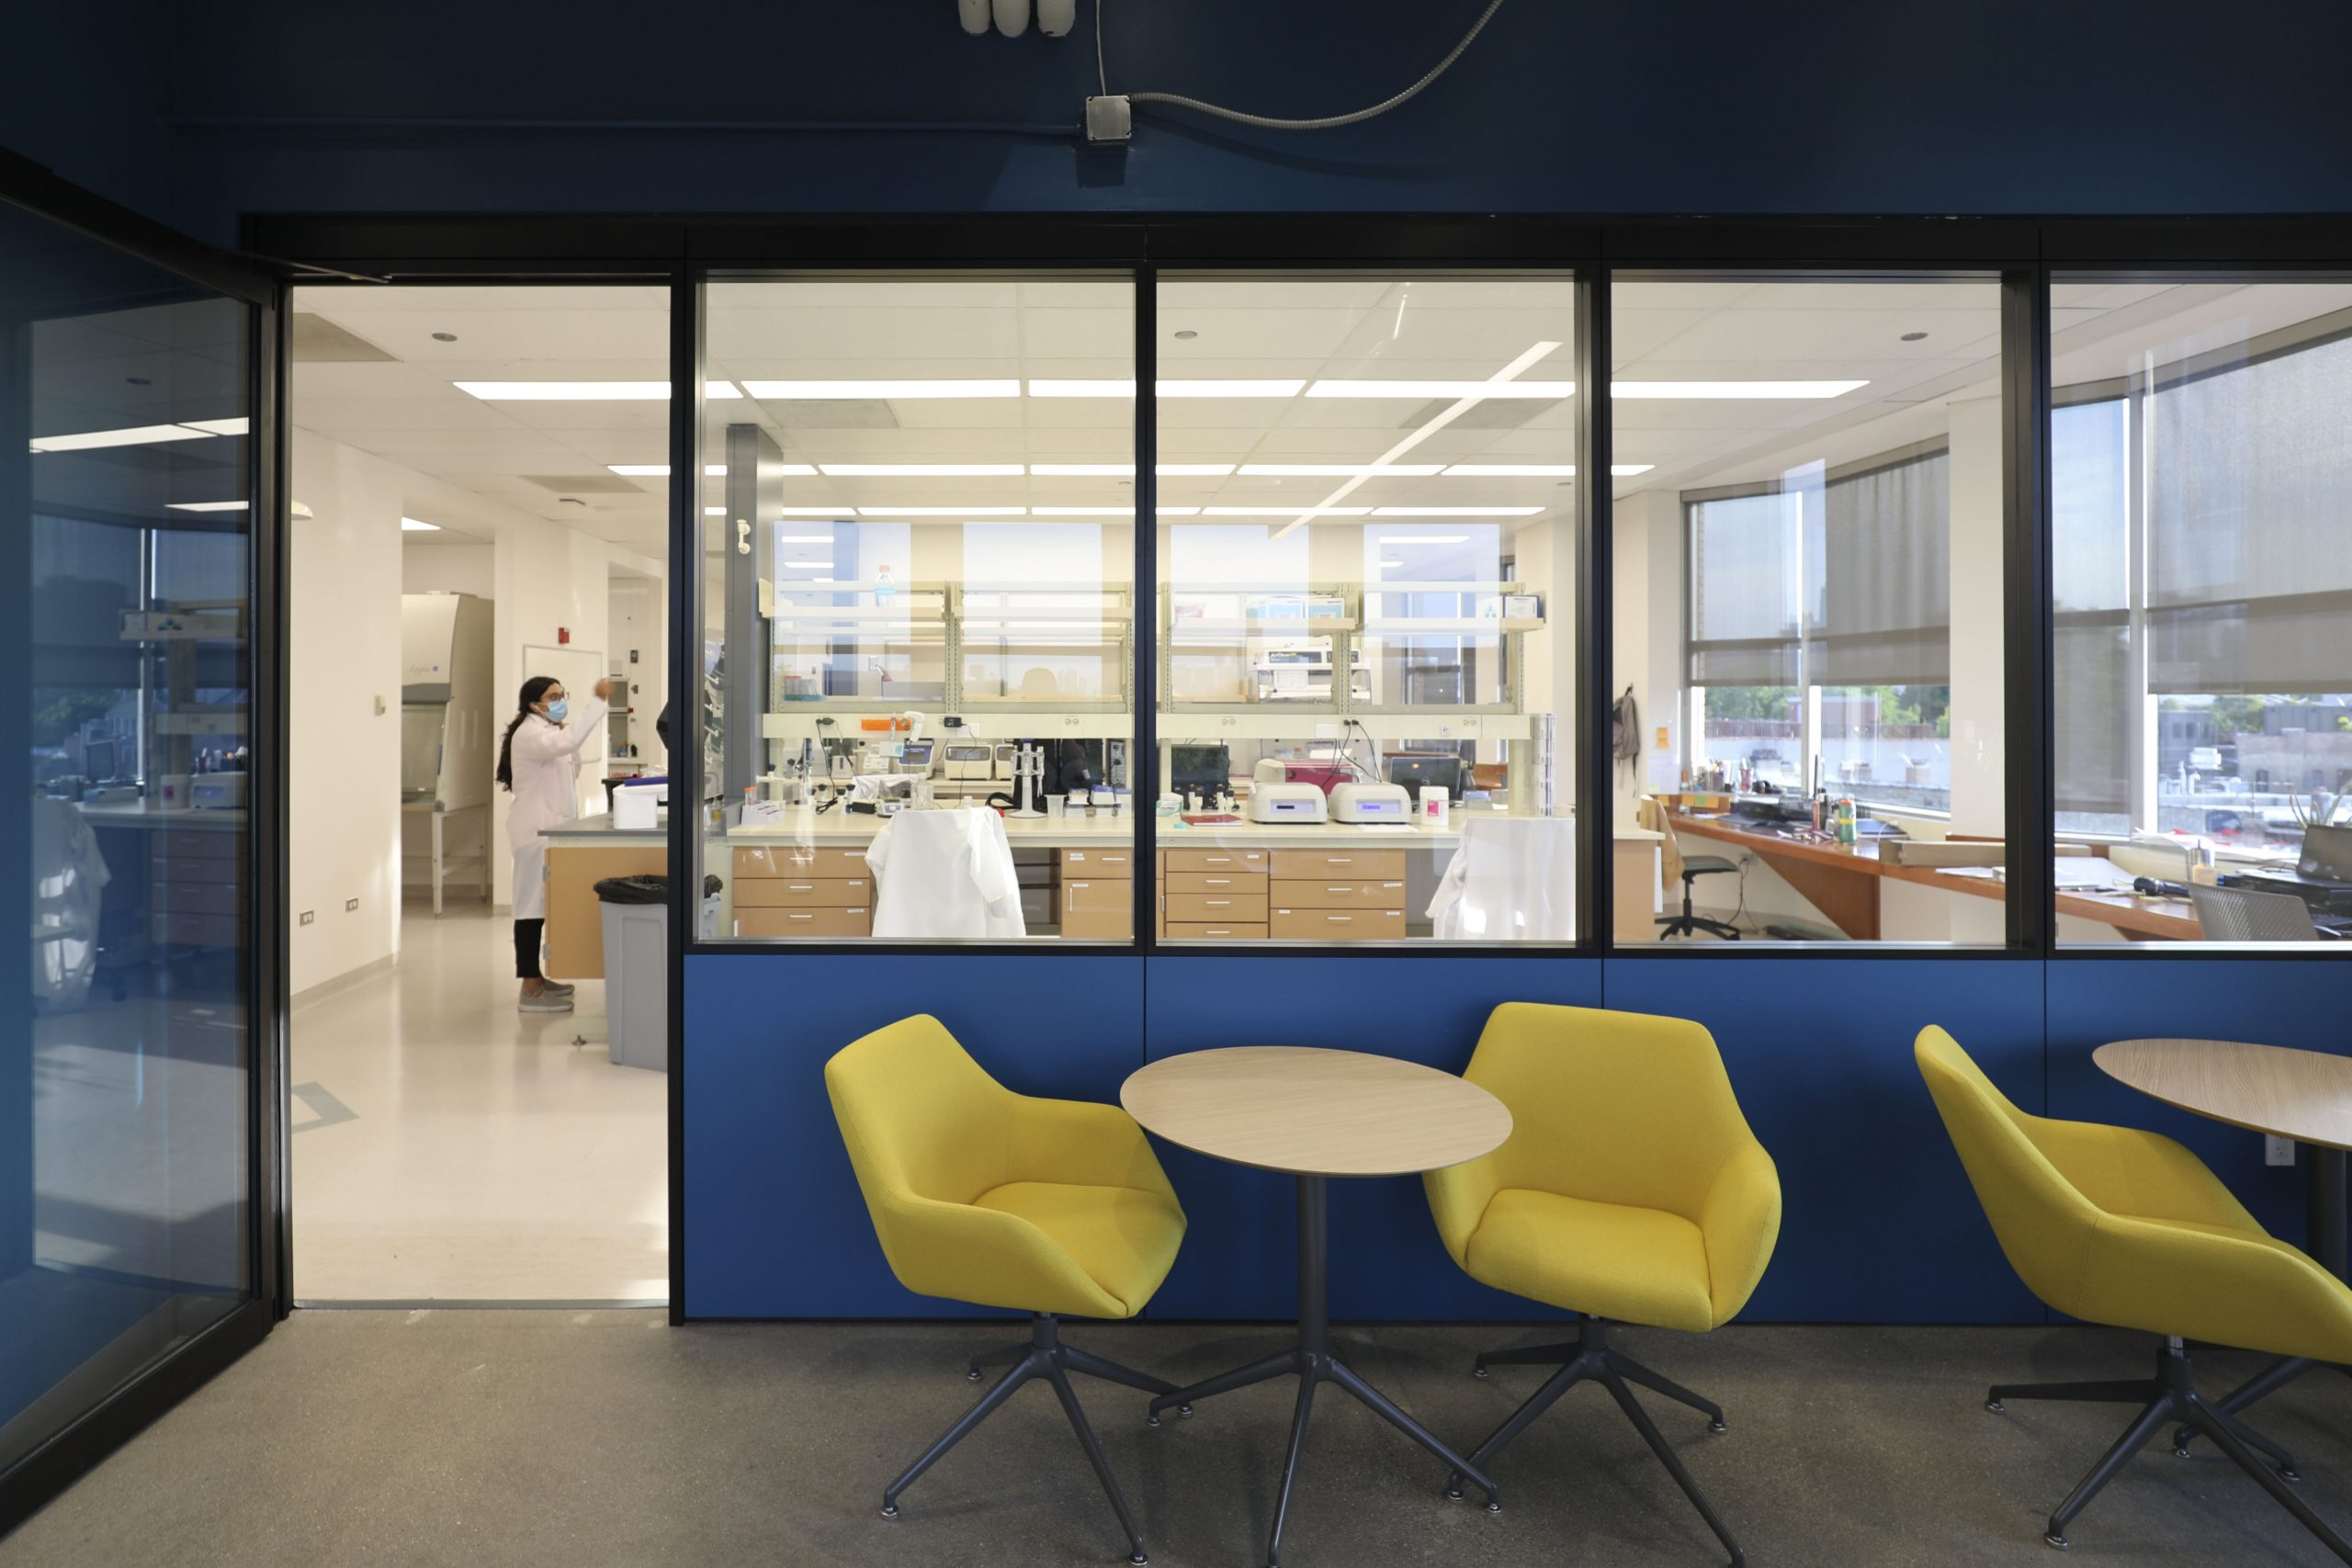 Chicago Is A Lab Sciences Desert. But What Kinds Of Labs Does It Need?